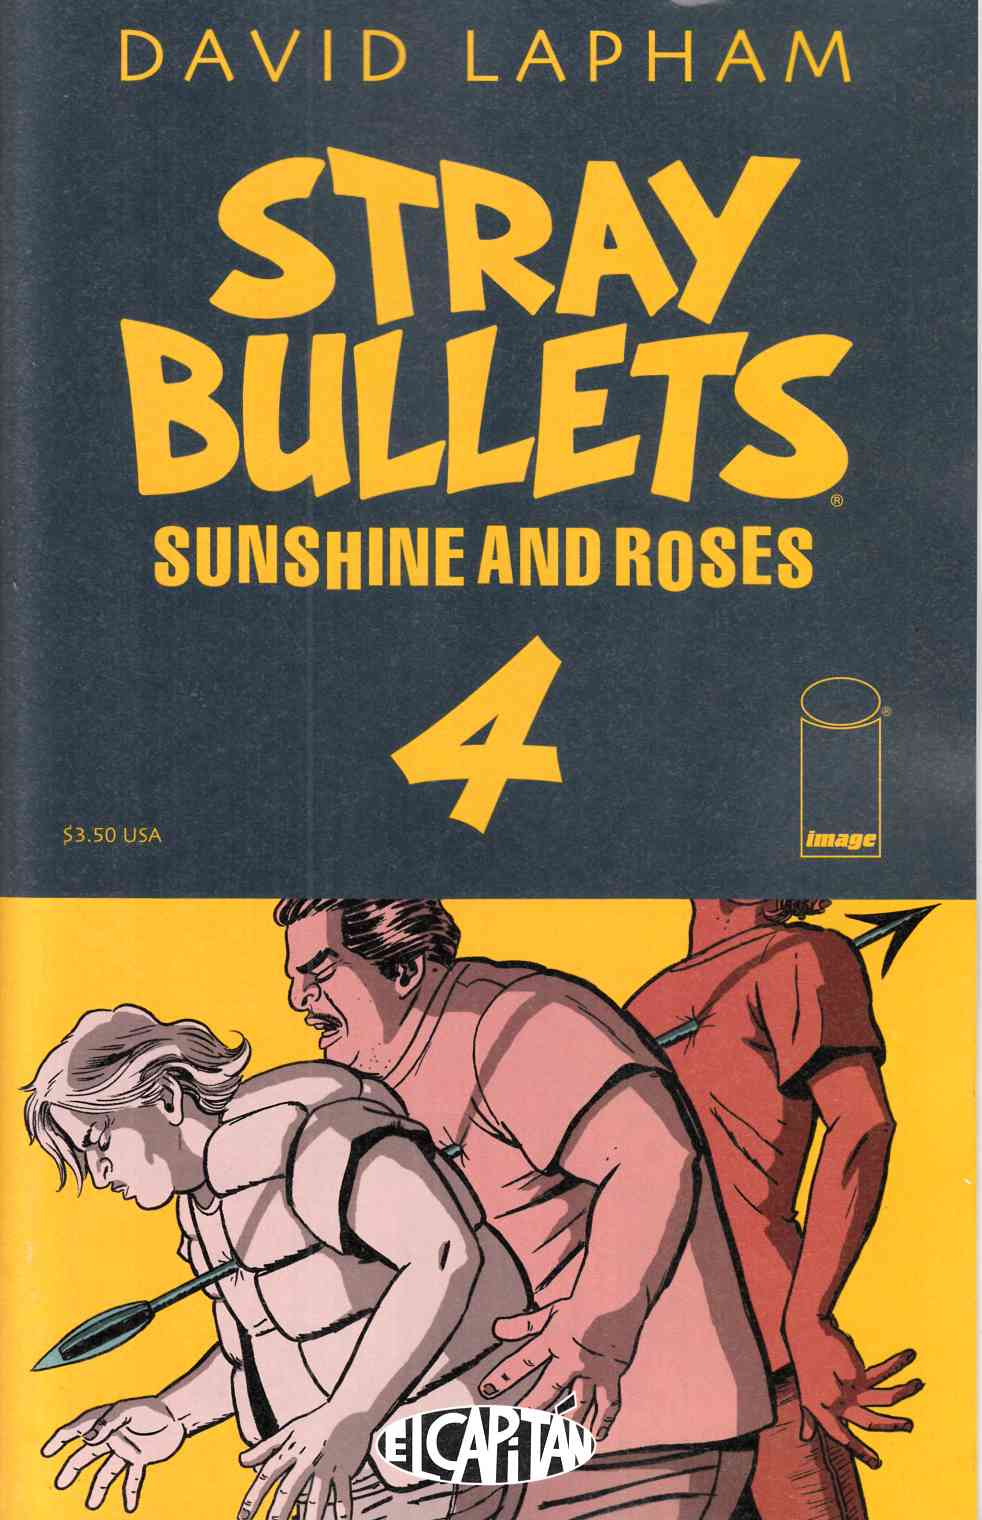 Stray Bullets Sunshine & Roses #4 [Image Comic] THUMBNAIL